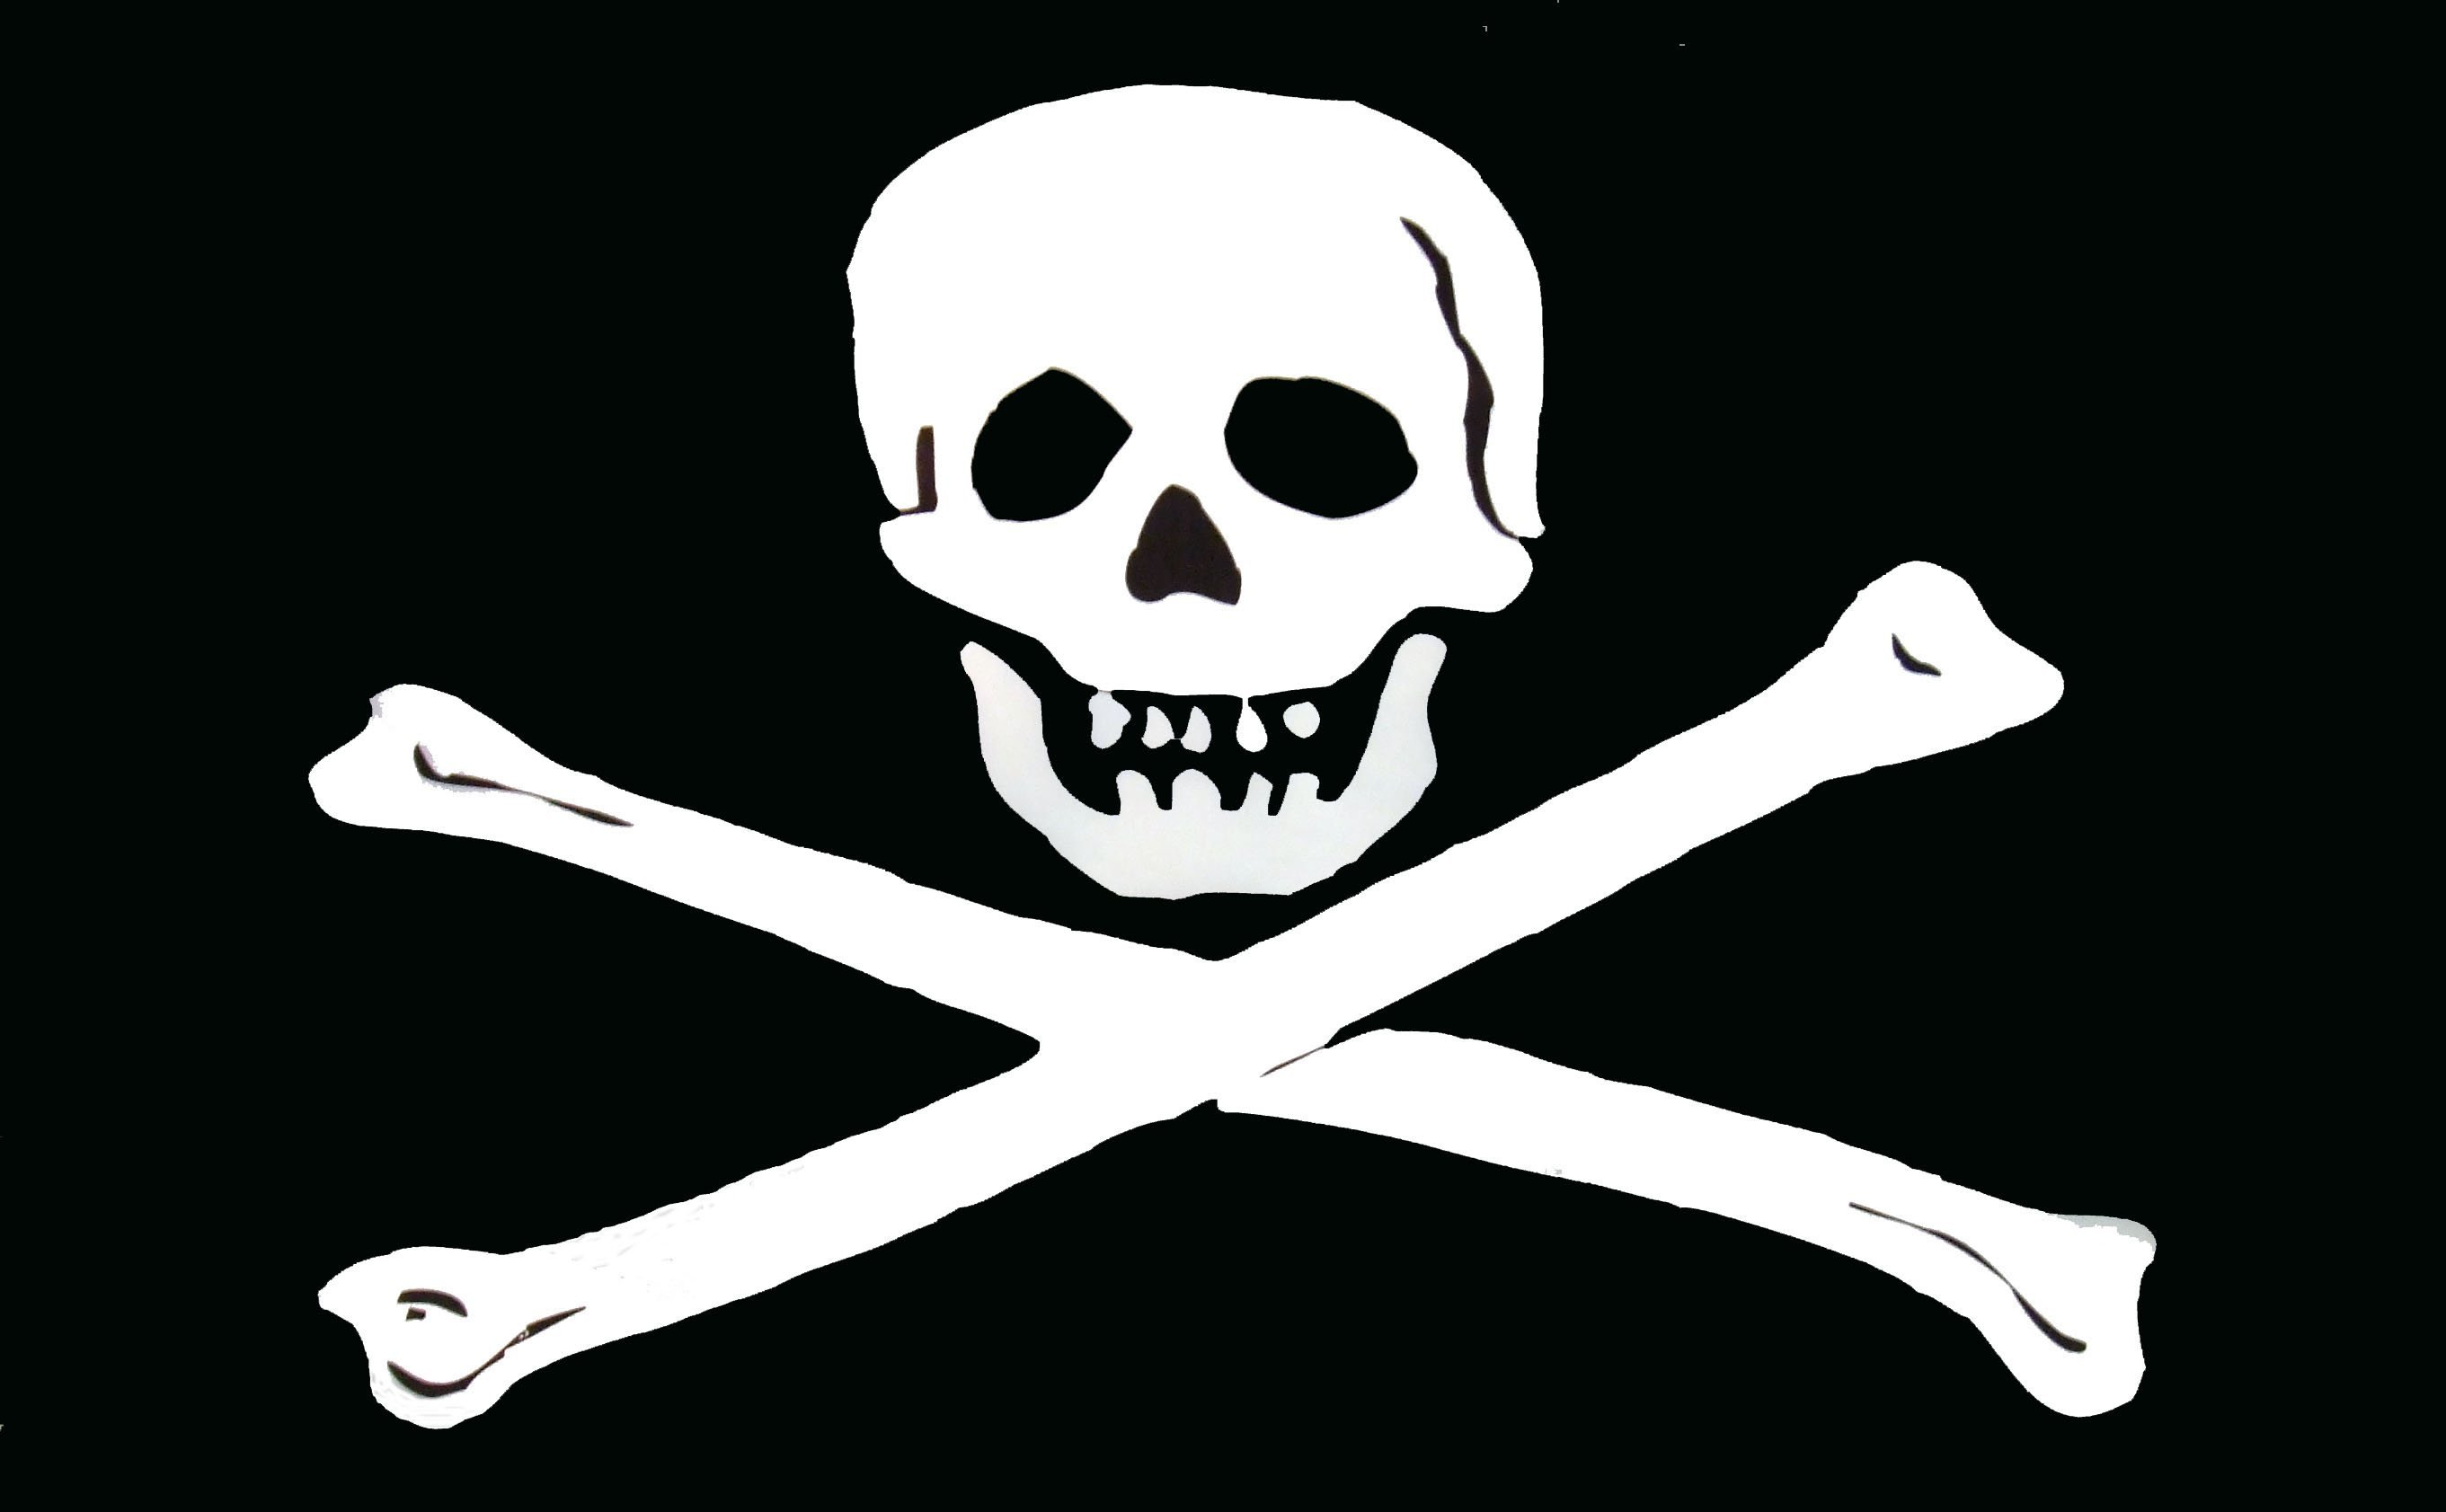 Jolly Roger Flag Images Crazy Gallery 2722x1683